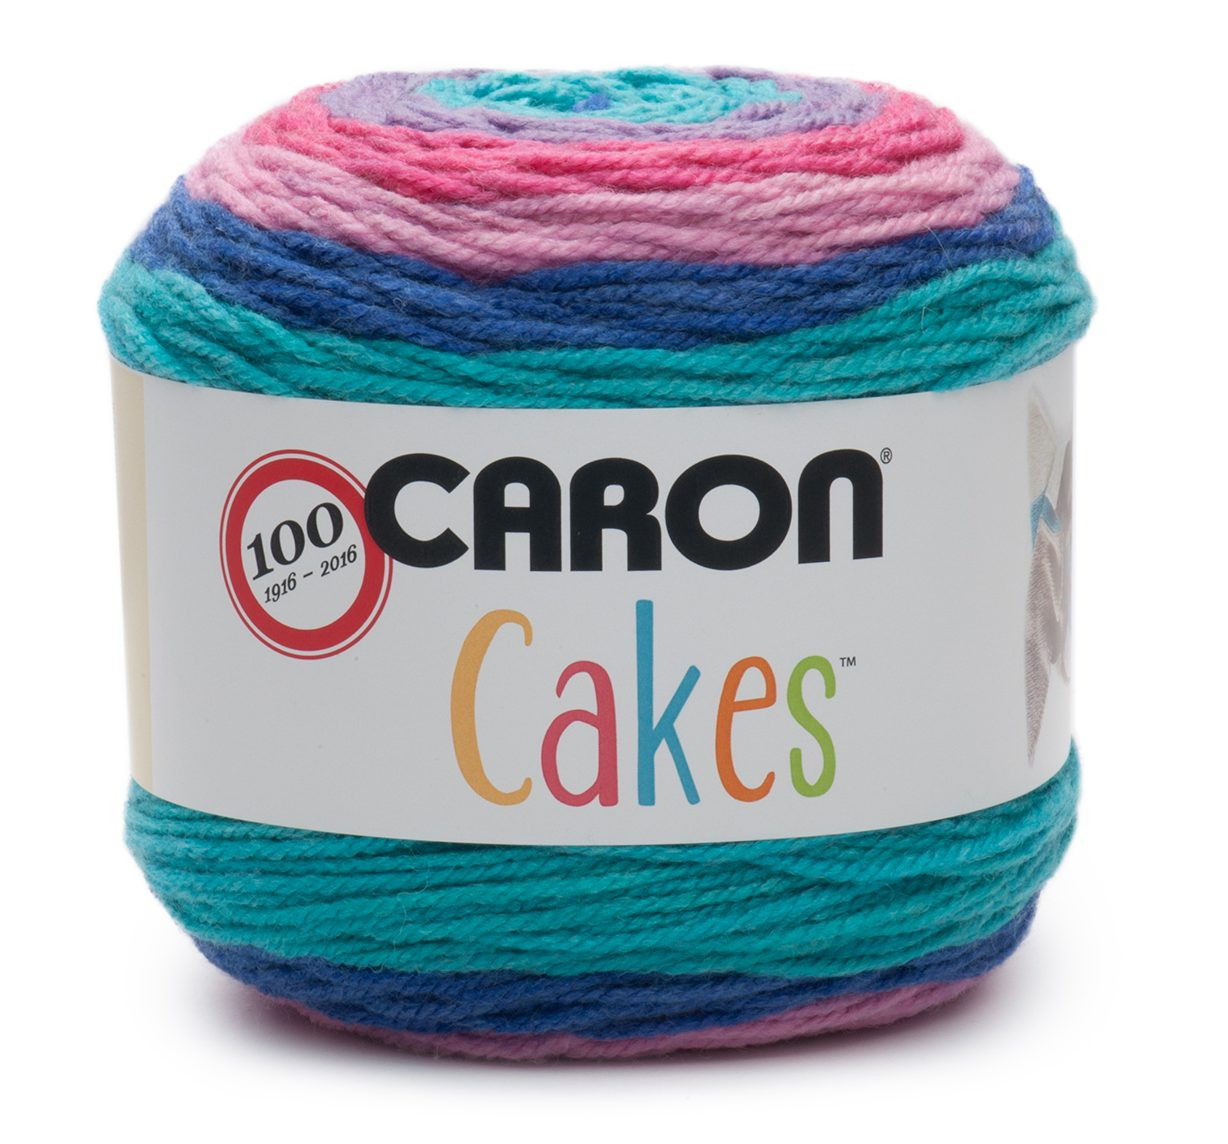 New Free Crochet Patterns Featuring Caron Cakes Yarn Baby Cakes Yarn Of Lovely 45 Images Baby Cakes Yarn